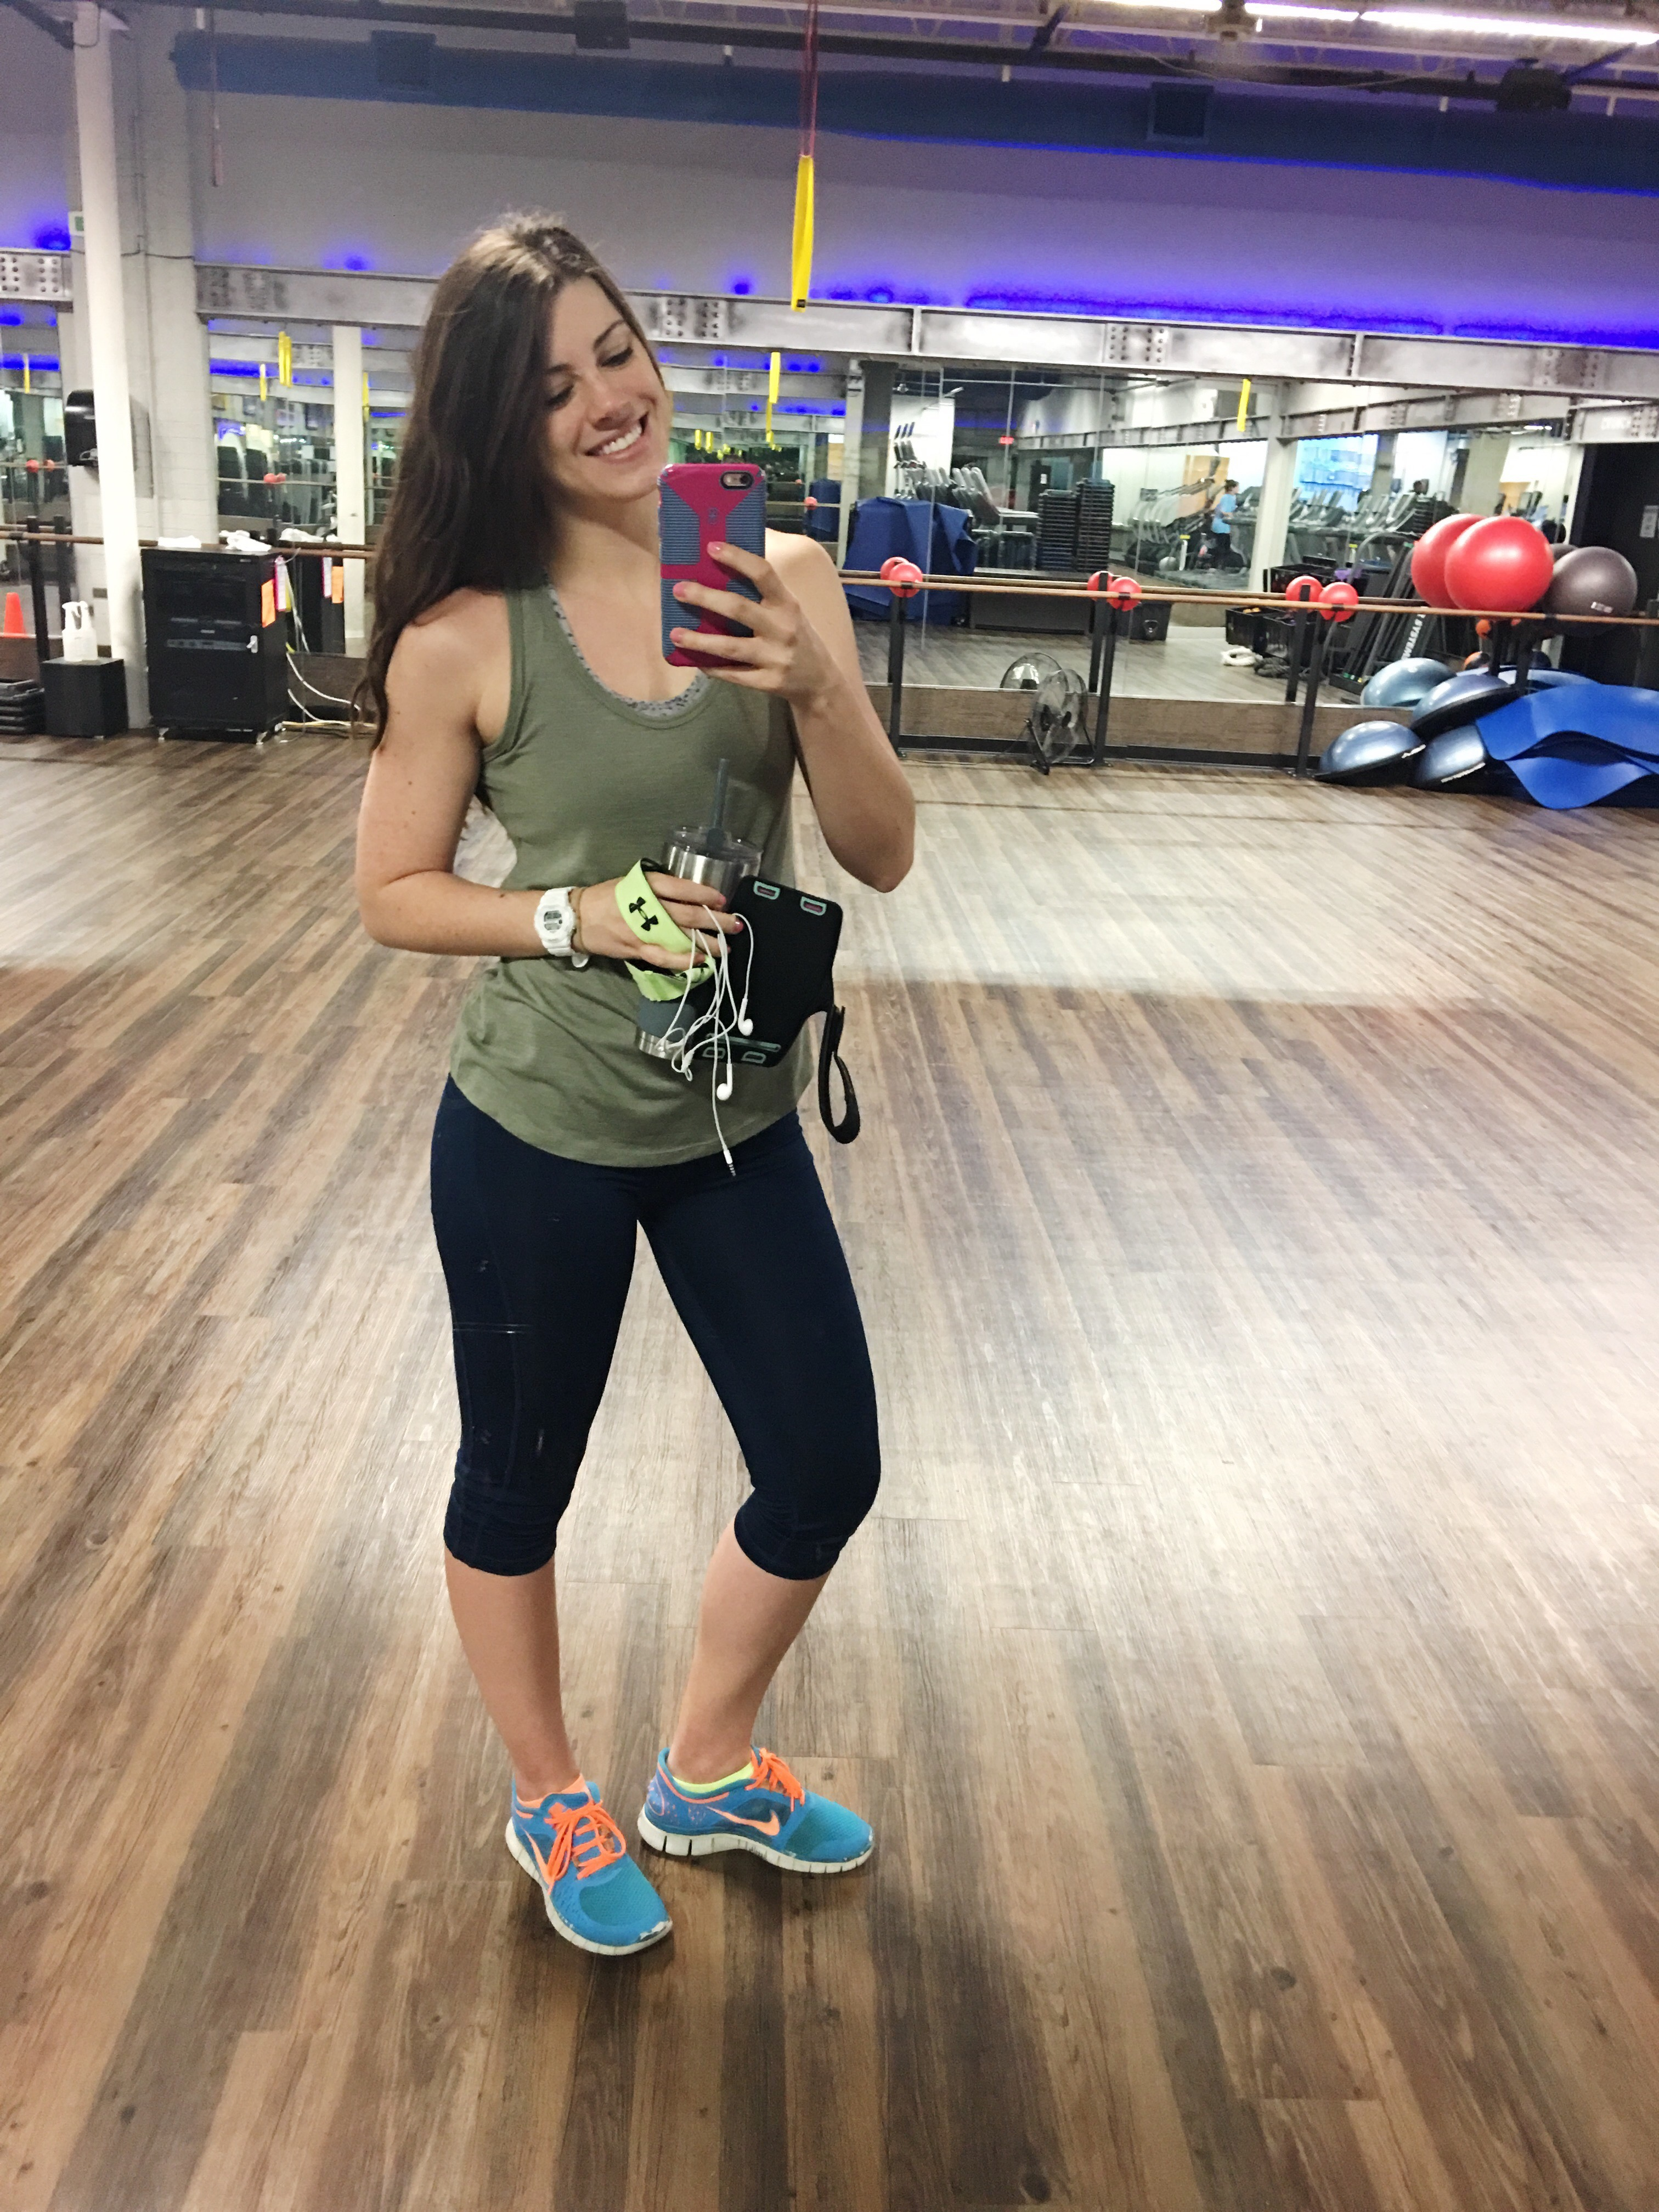 a28c8ff8357 I usually do cardio one to two times a week. It makes me feel great and is  a good supplement to lifting and yoga. Adding in the HIIT also helps boost  your ...